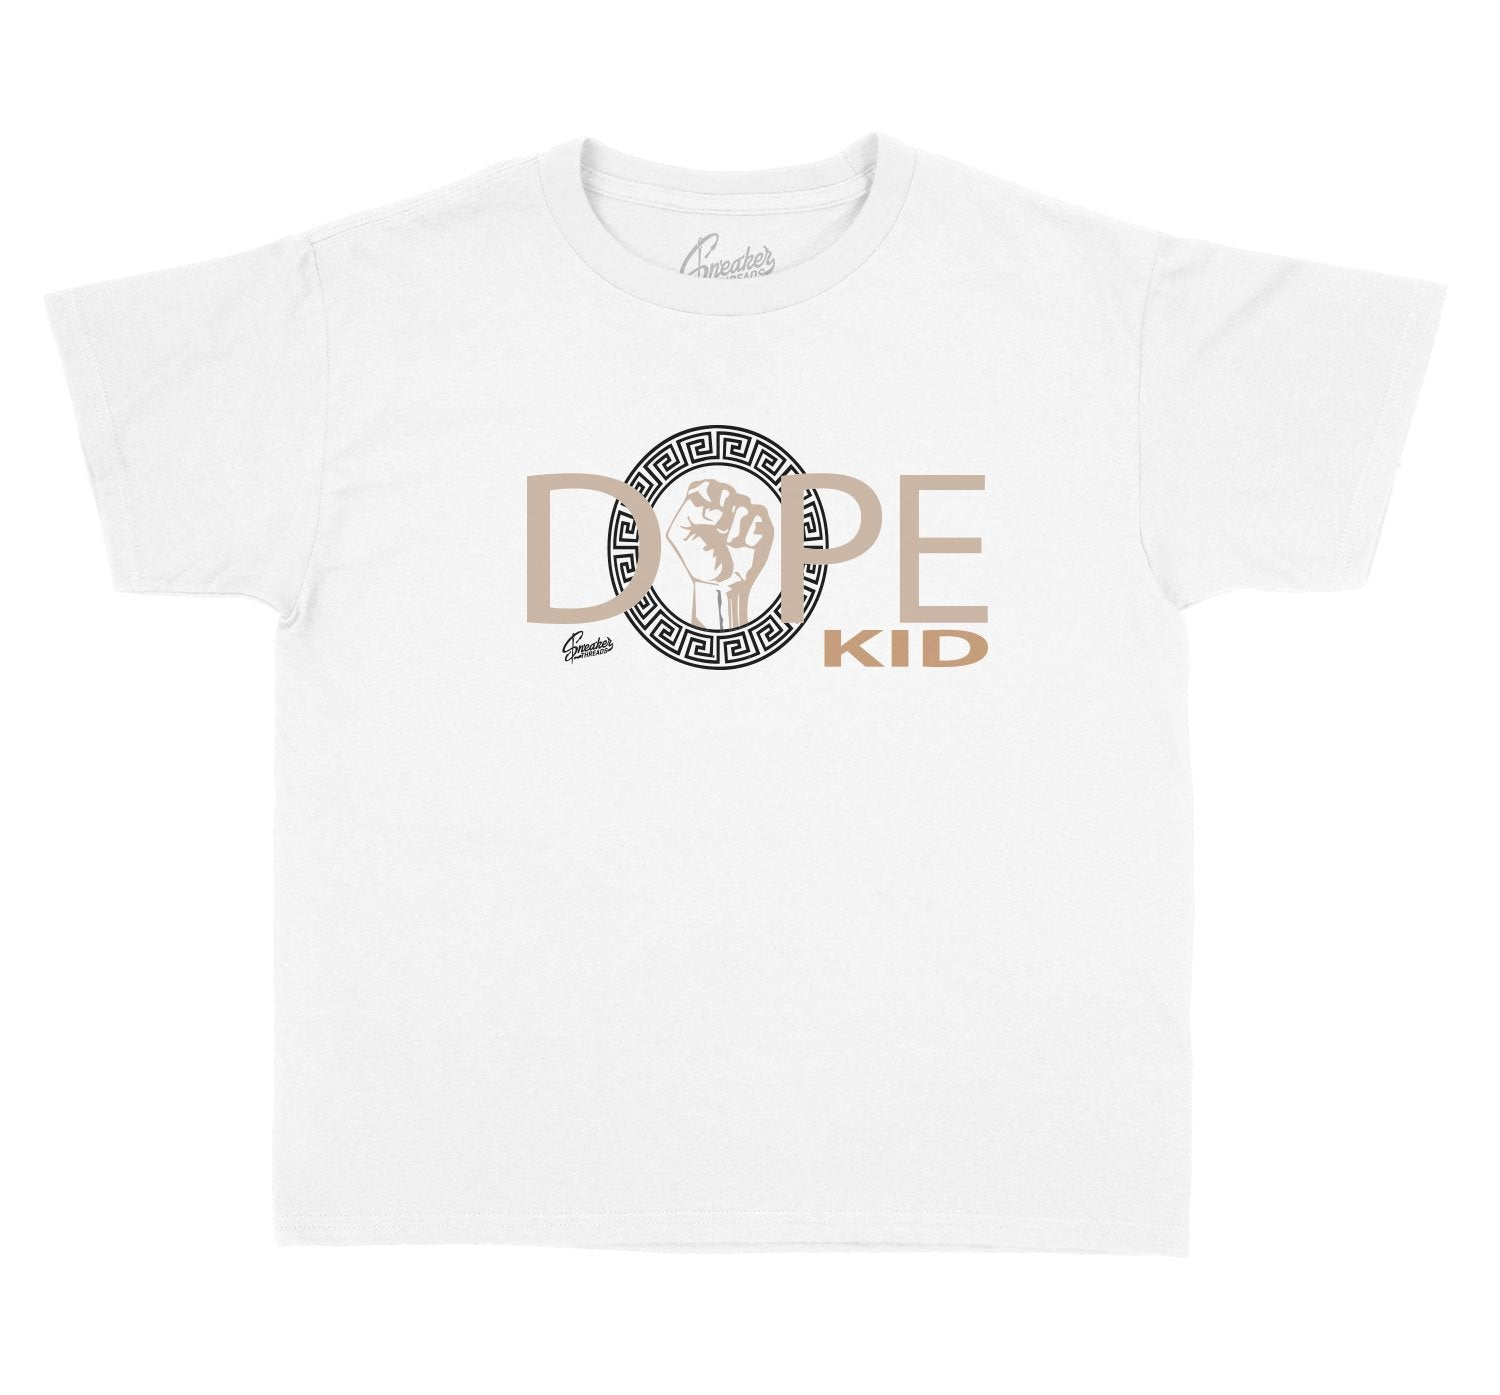 Dopest Kids Shirt to match with Yeezy 500 Stone